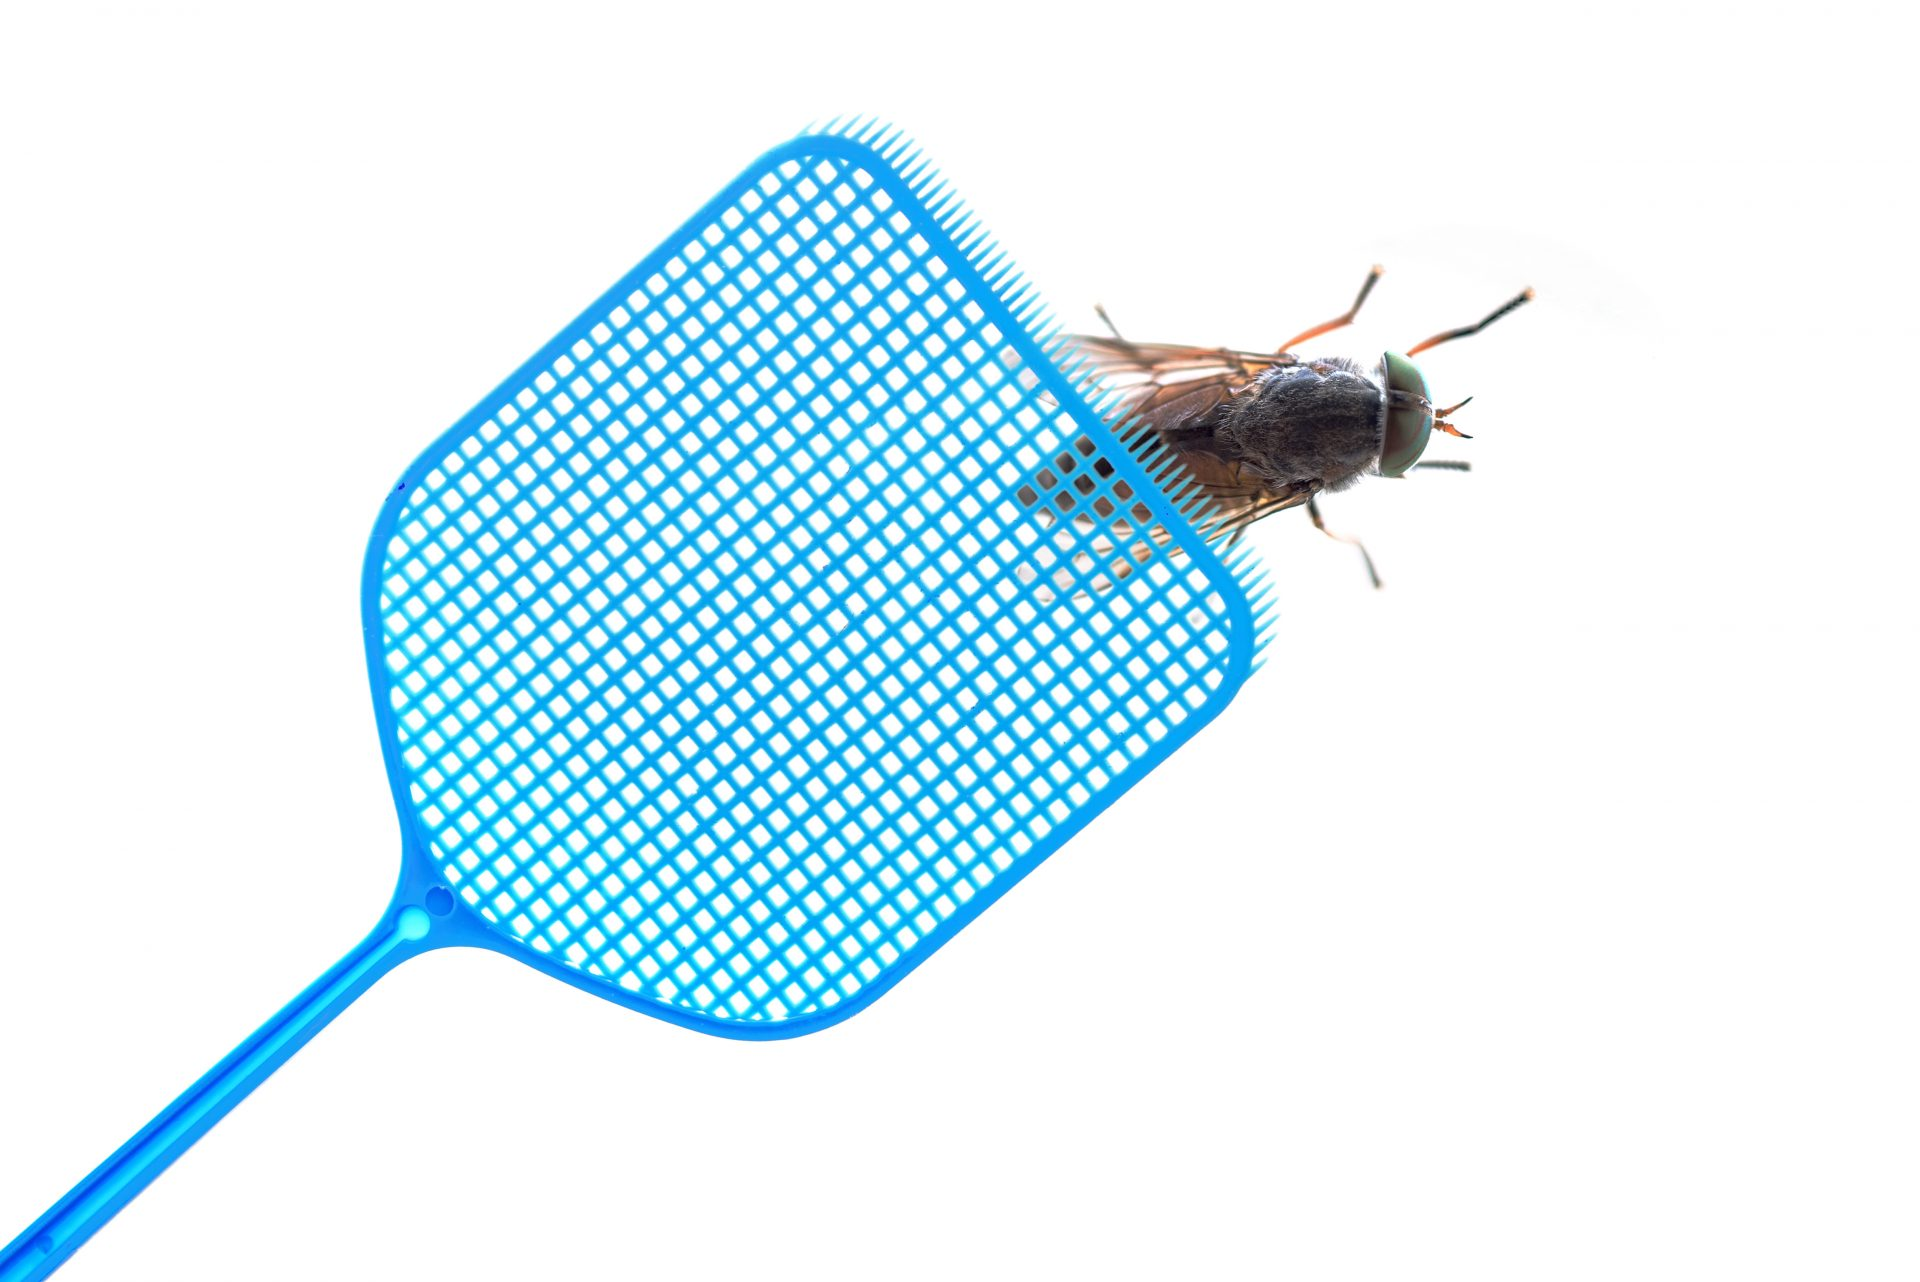 exterminators in baltimore county -- Raven Termite and Pest Control